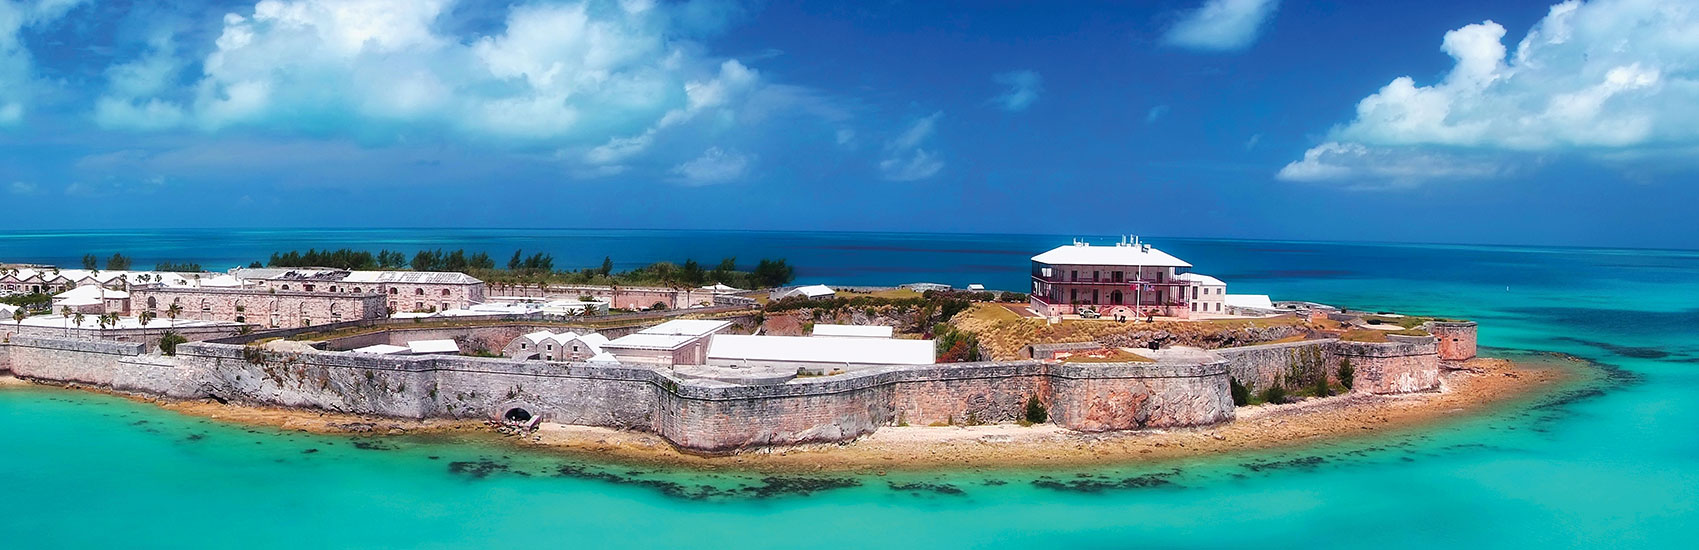 Discover Bermuda with Celebrity Cruises 2